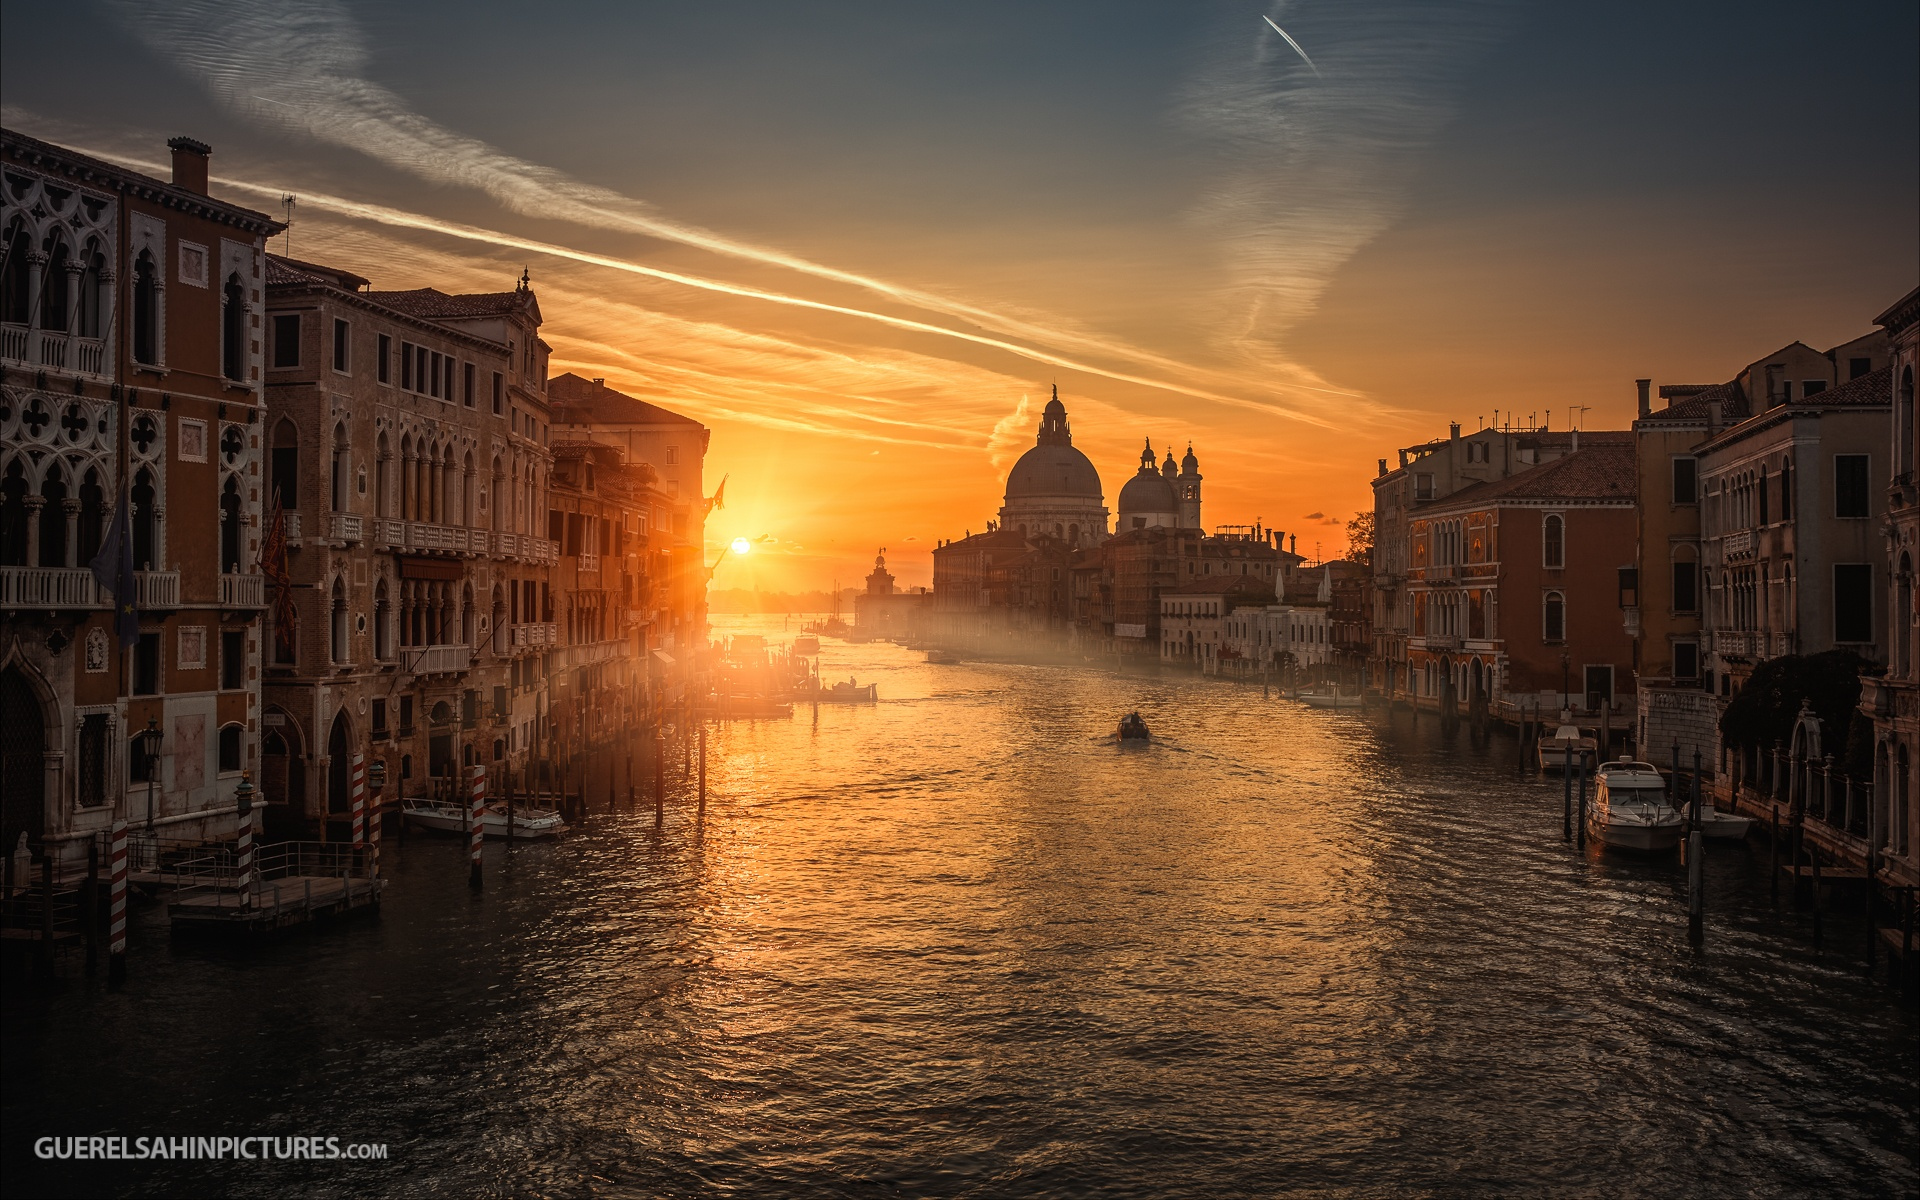 The Top 10 Most Photographed Cities on 500px, a Breathtaking Photo Tour